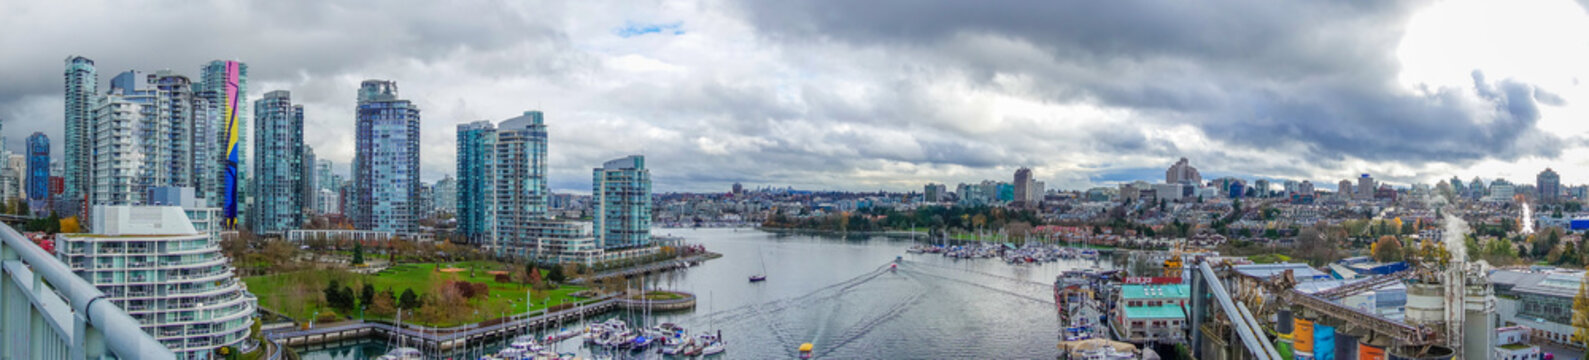 Scenery of Vancouver, Canada